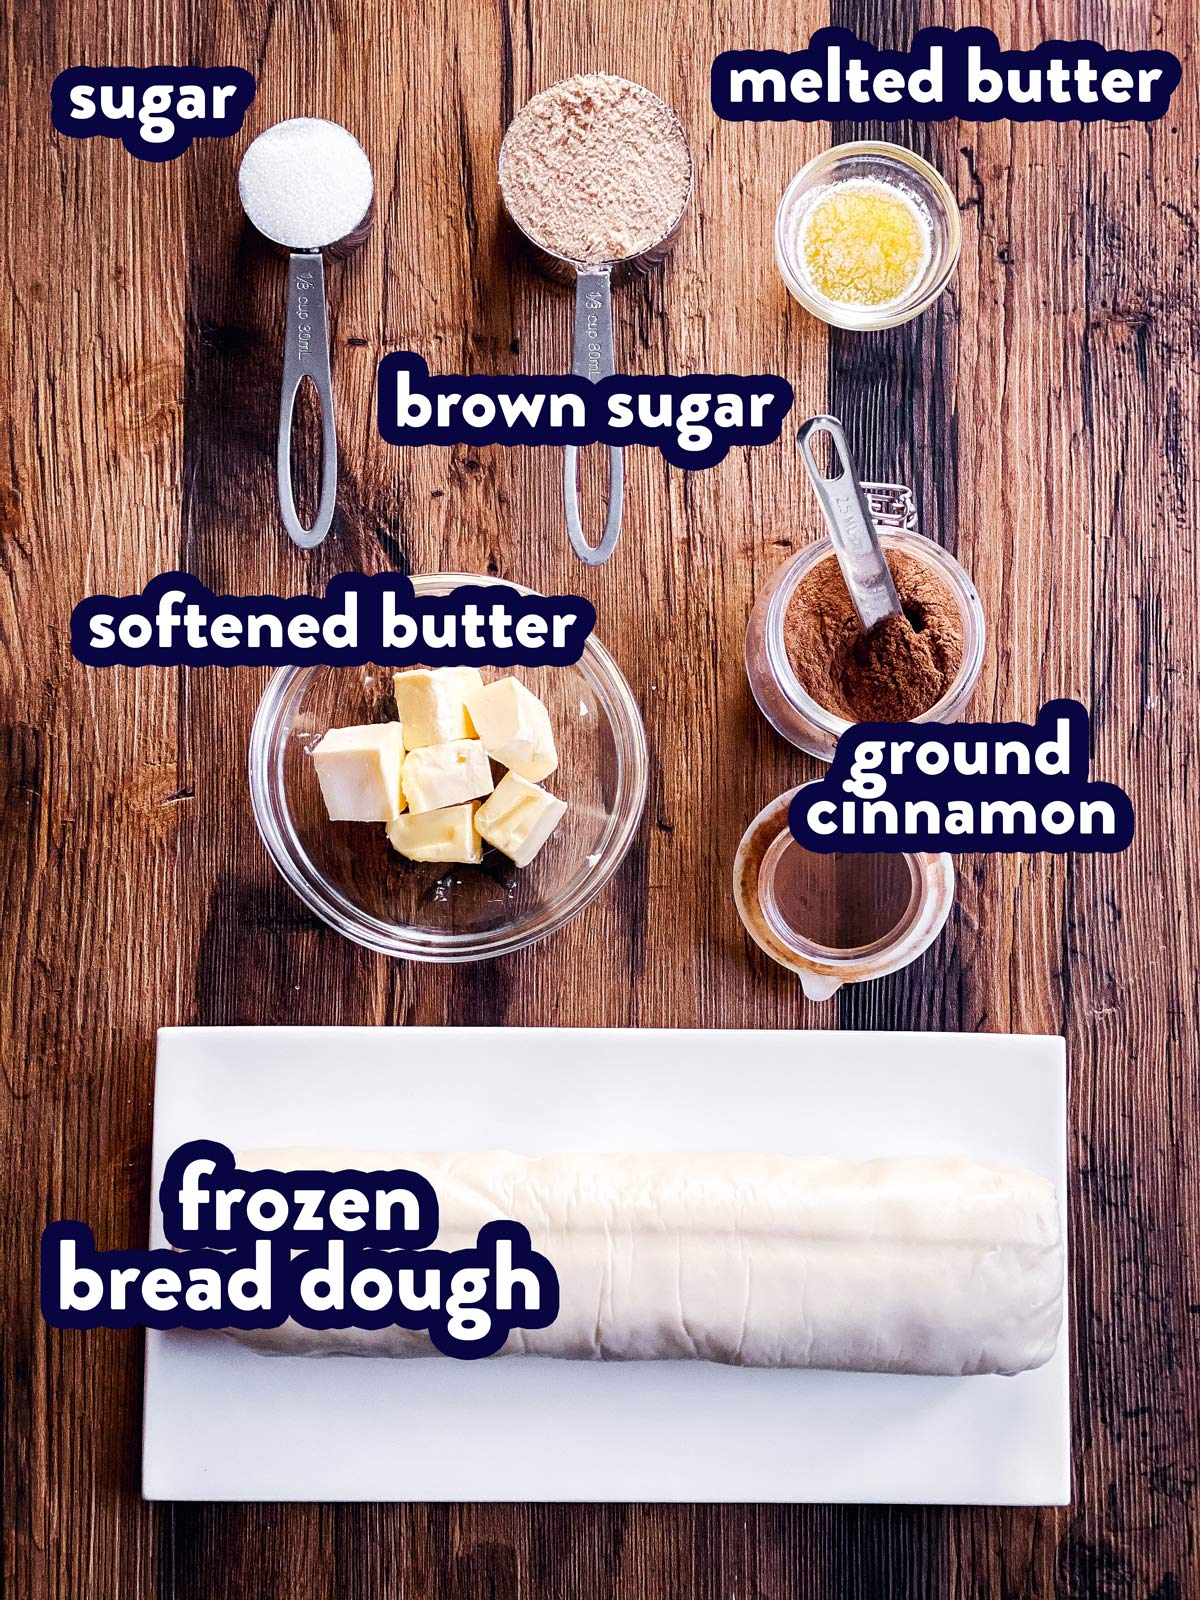 ingredients for bread dough cinnamon rolls with text labels